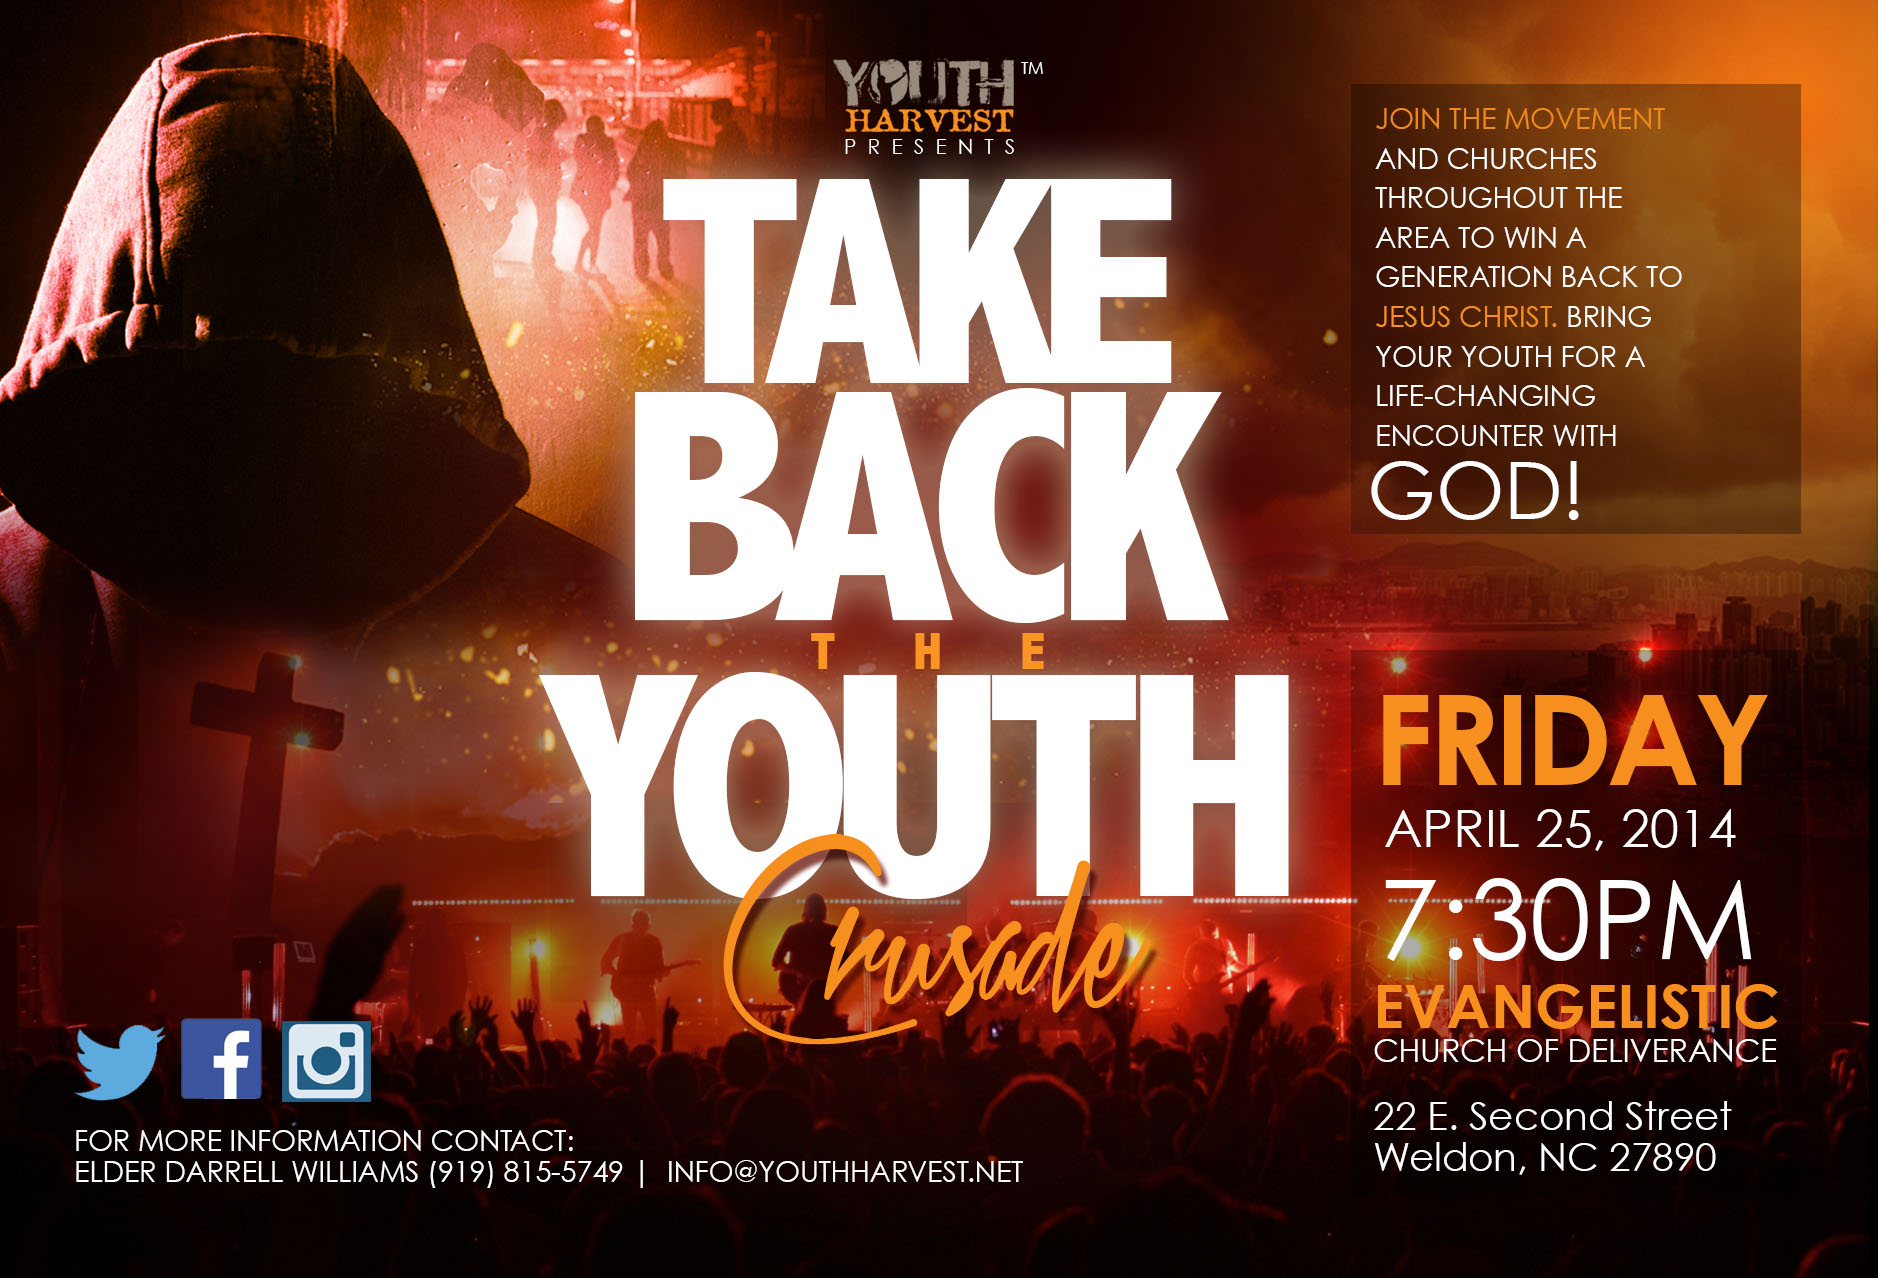 Take Back the Youth Crusade – YOUTH HARVEST